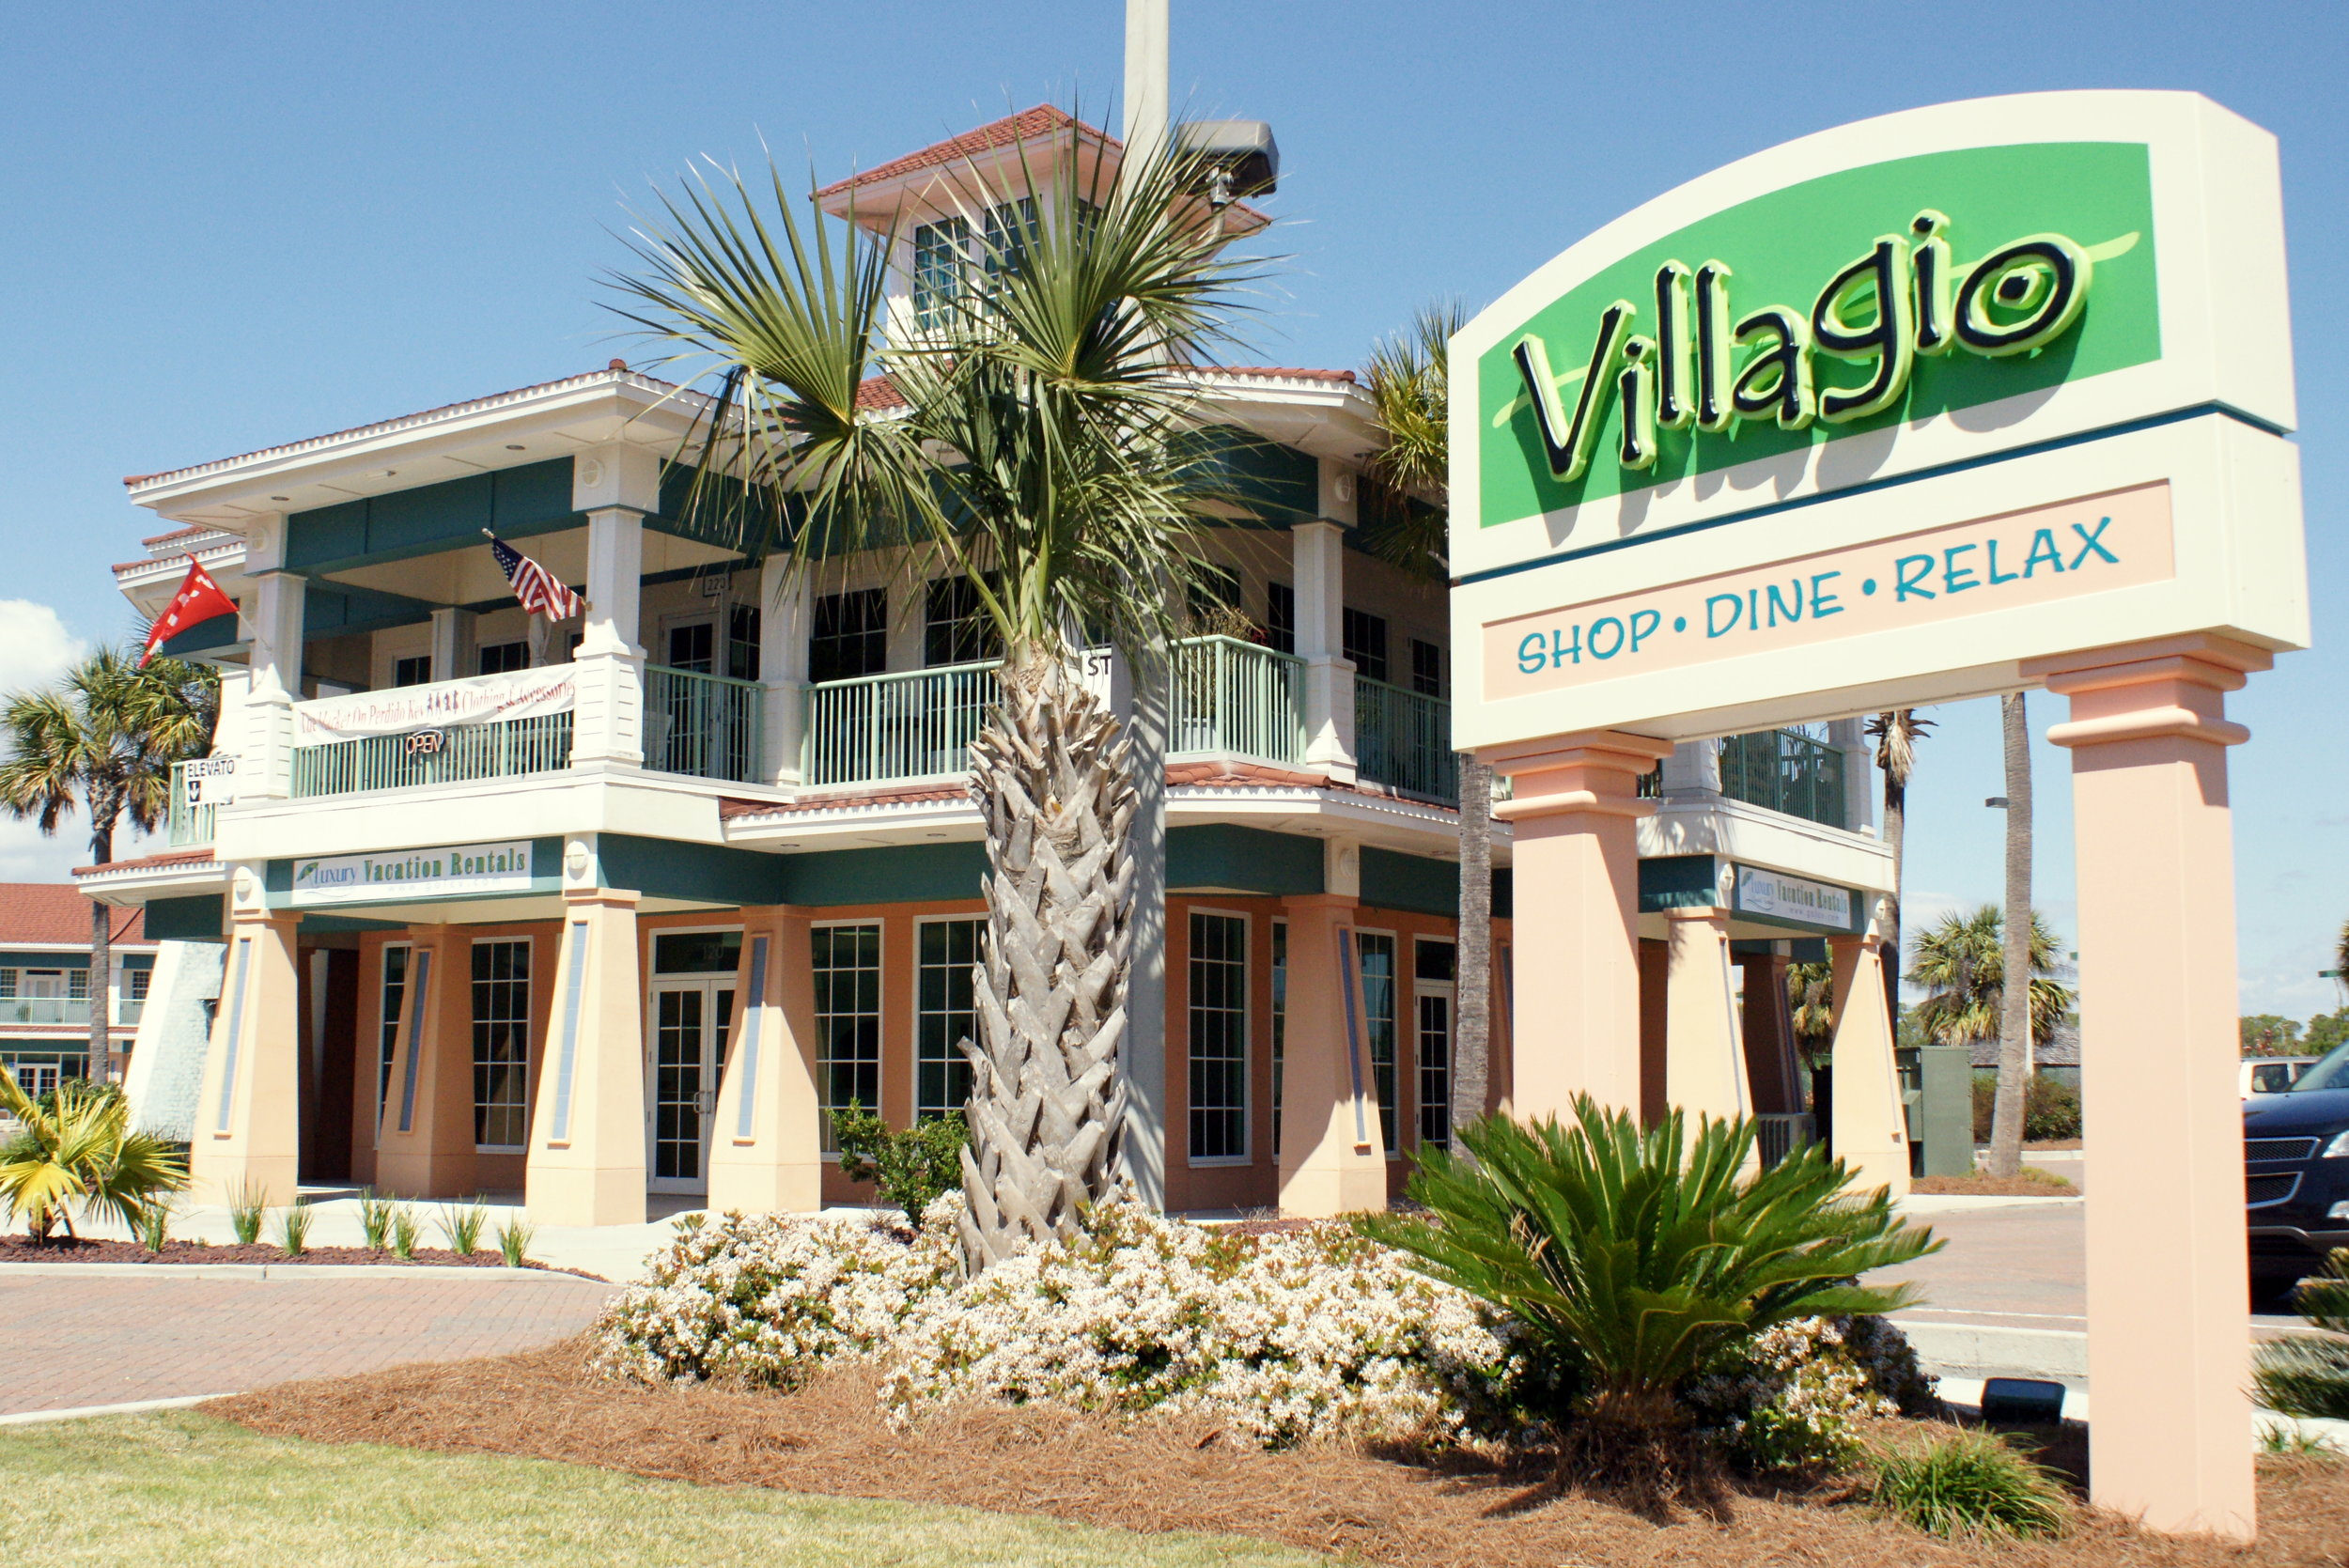 perdido-key-photo-shops-at-villagio.JPG